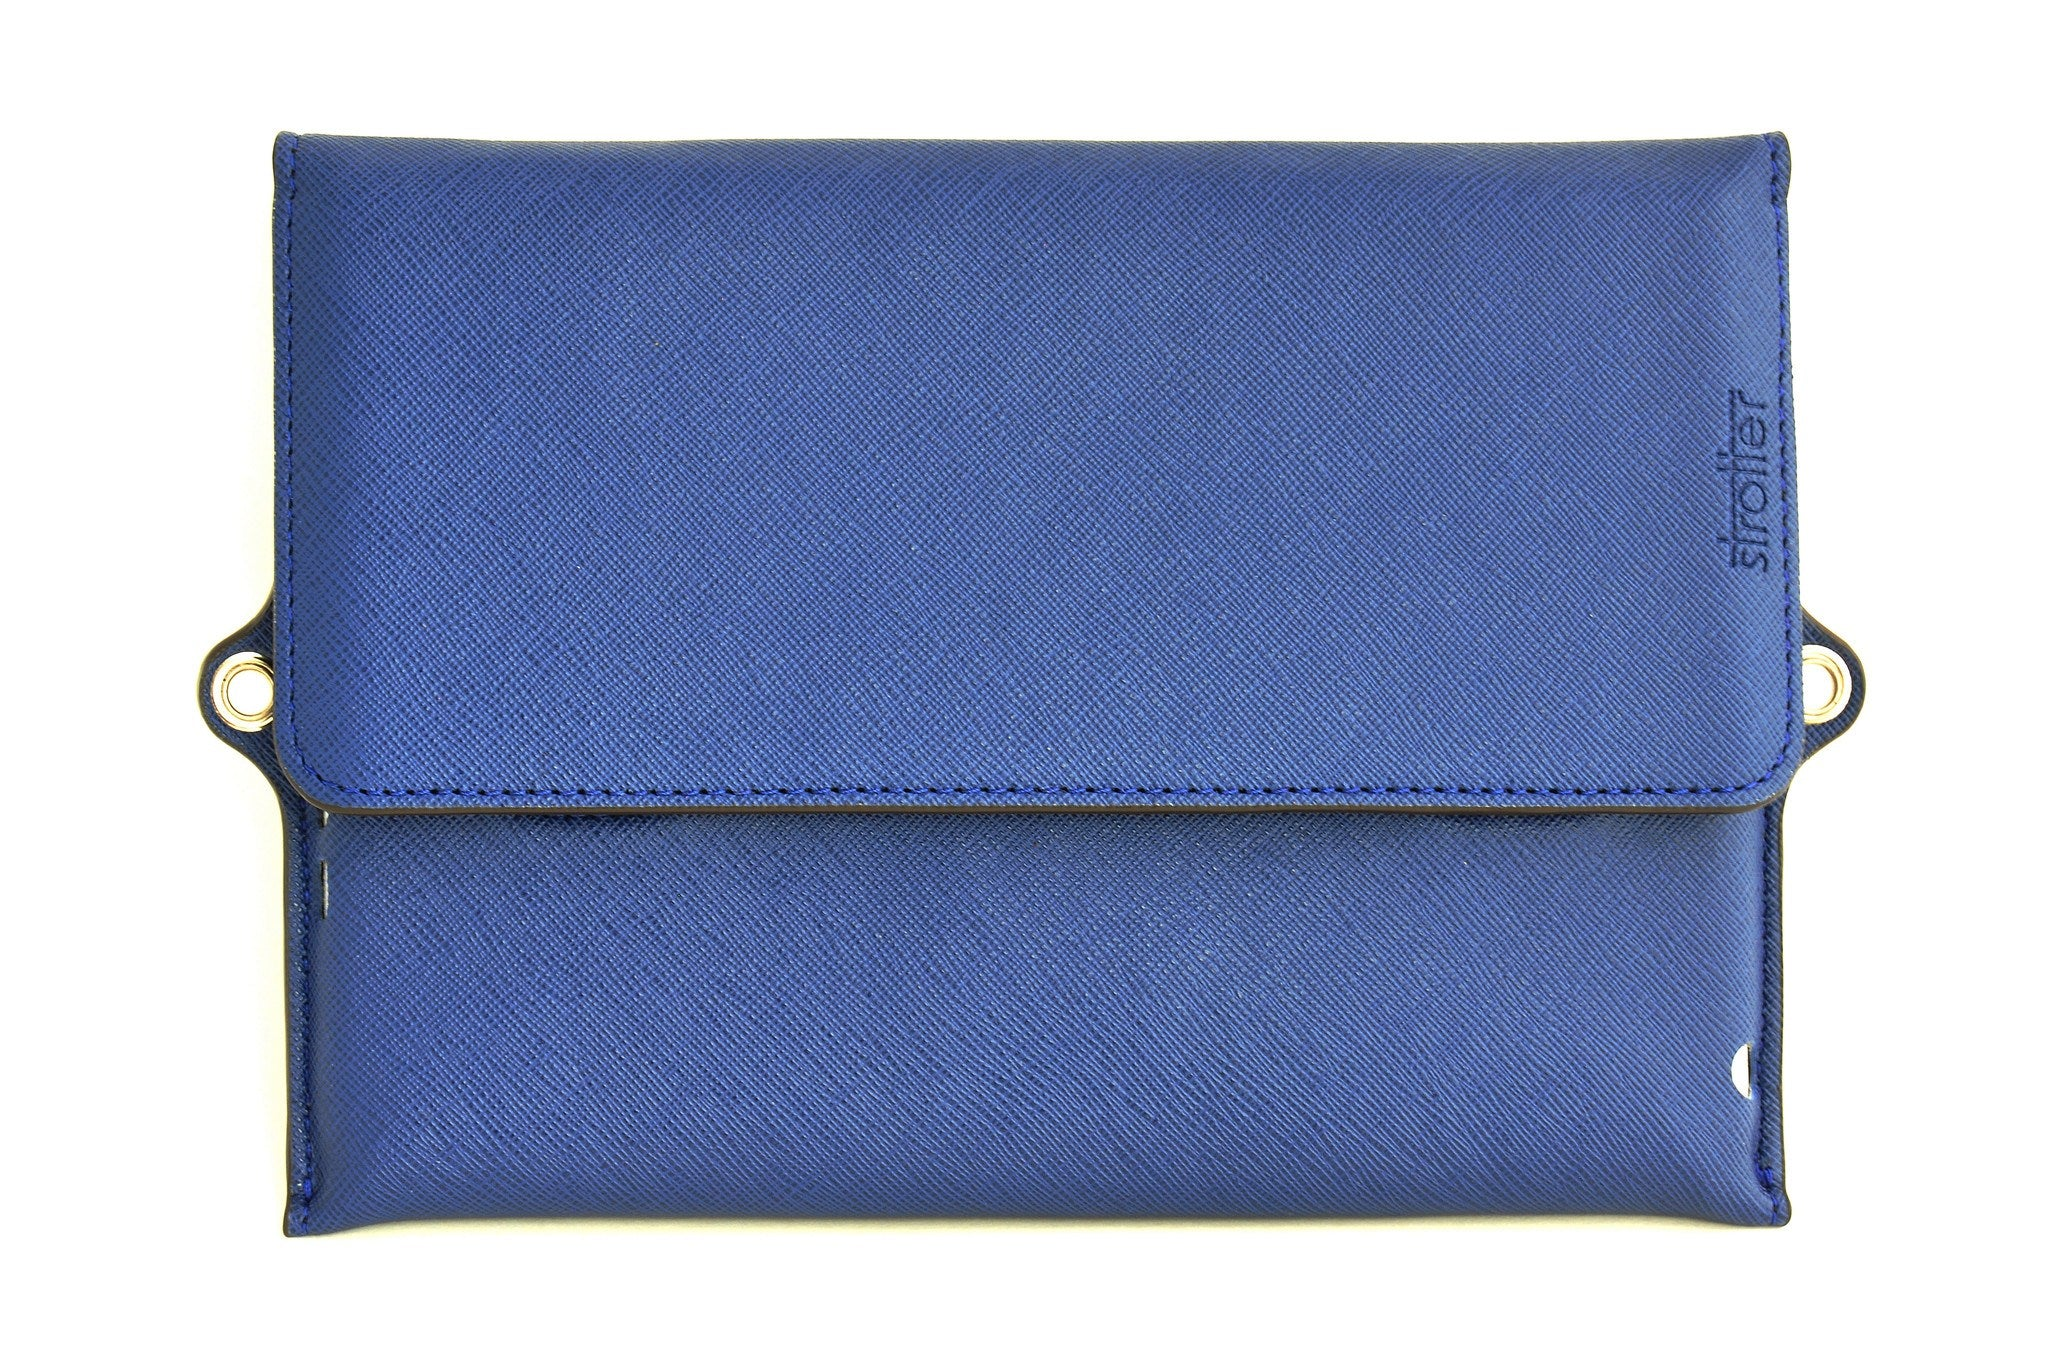 Case for iPad Mini - Across SL (synthetic leather) in Navy Blue.